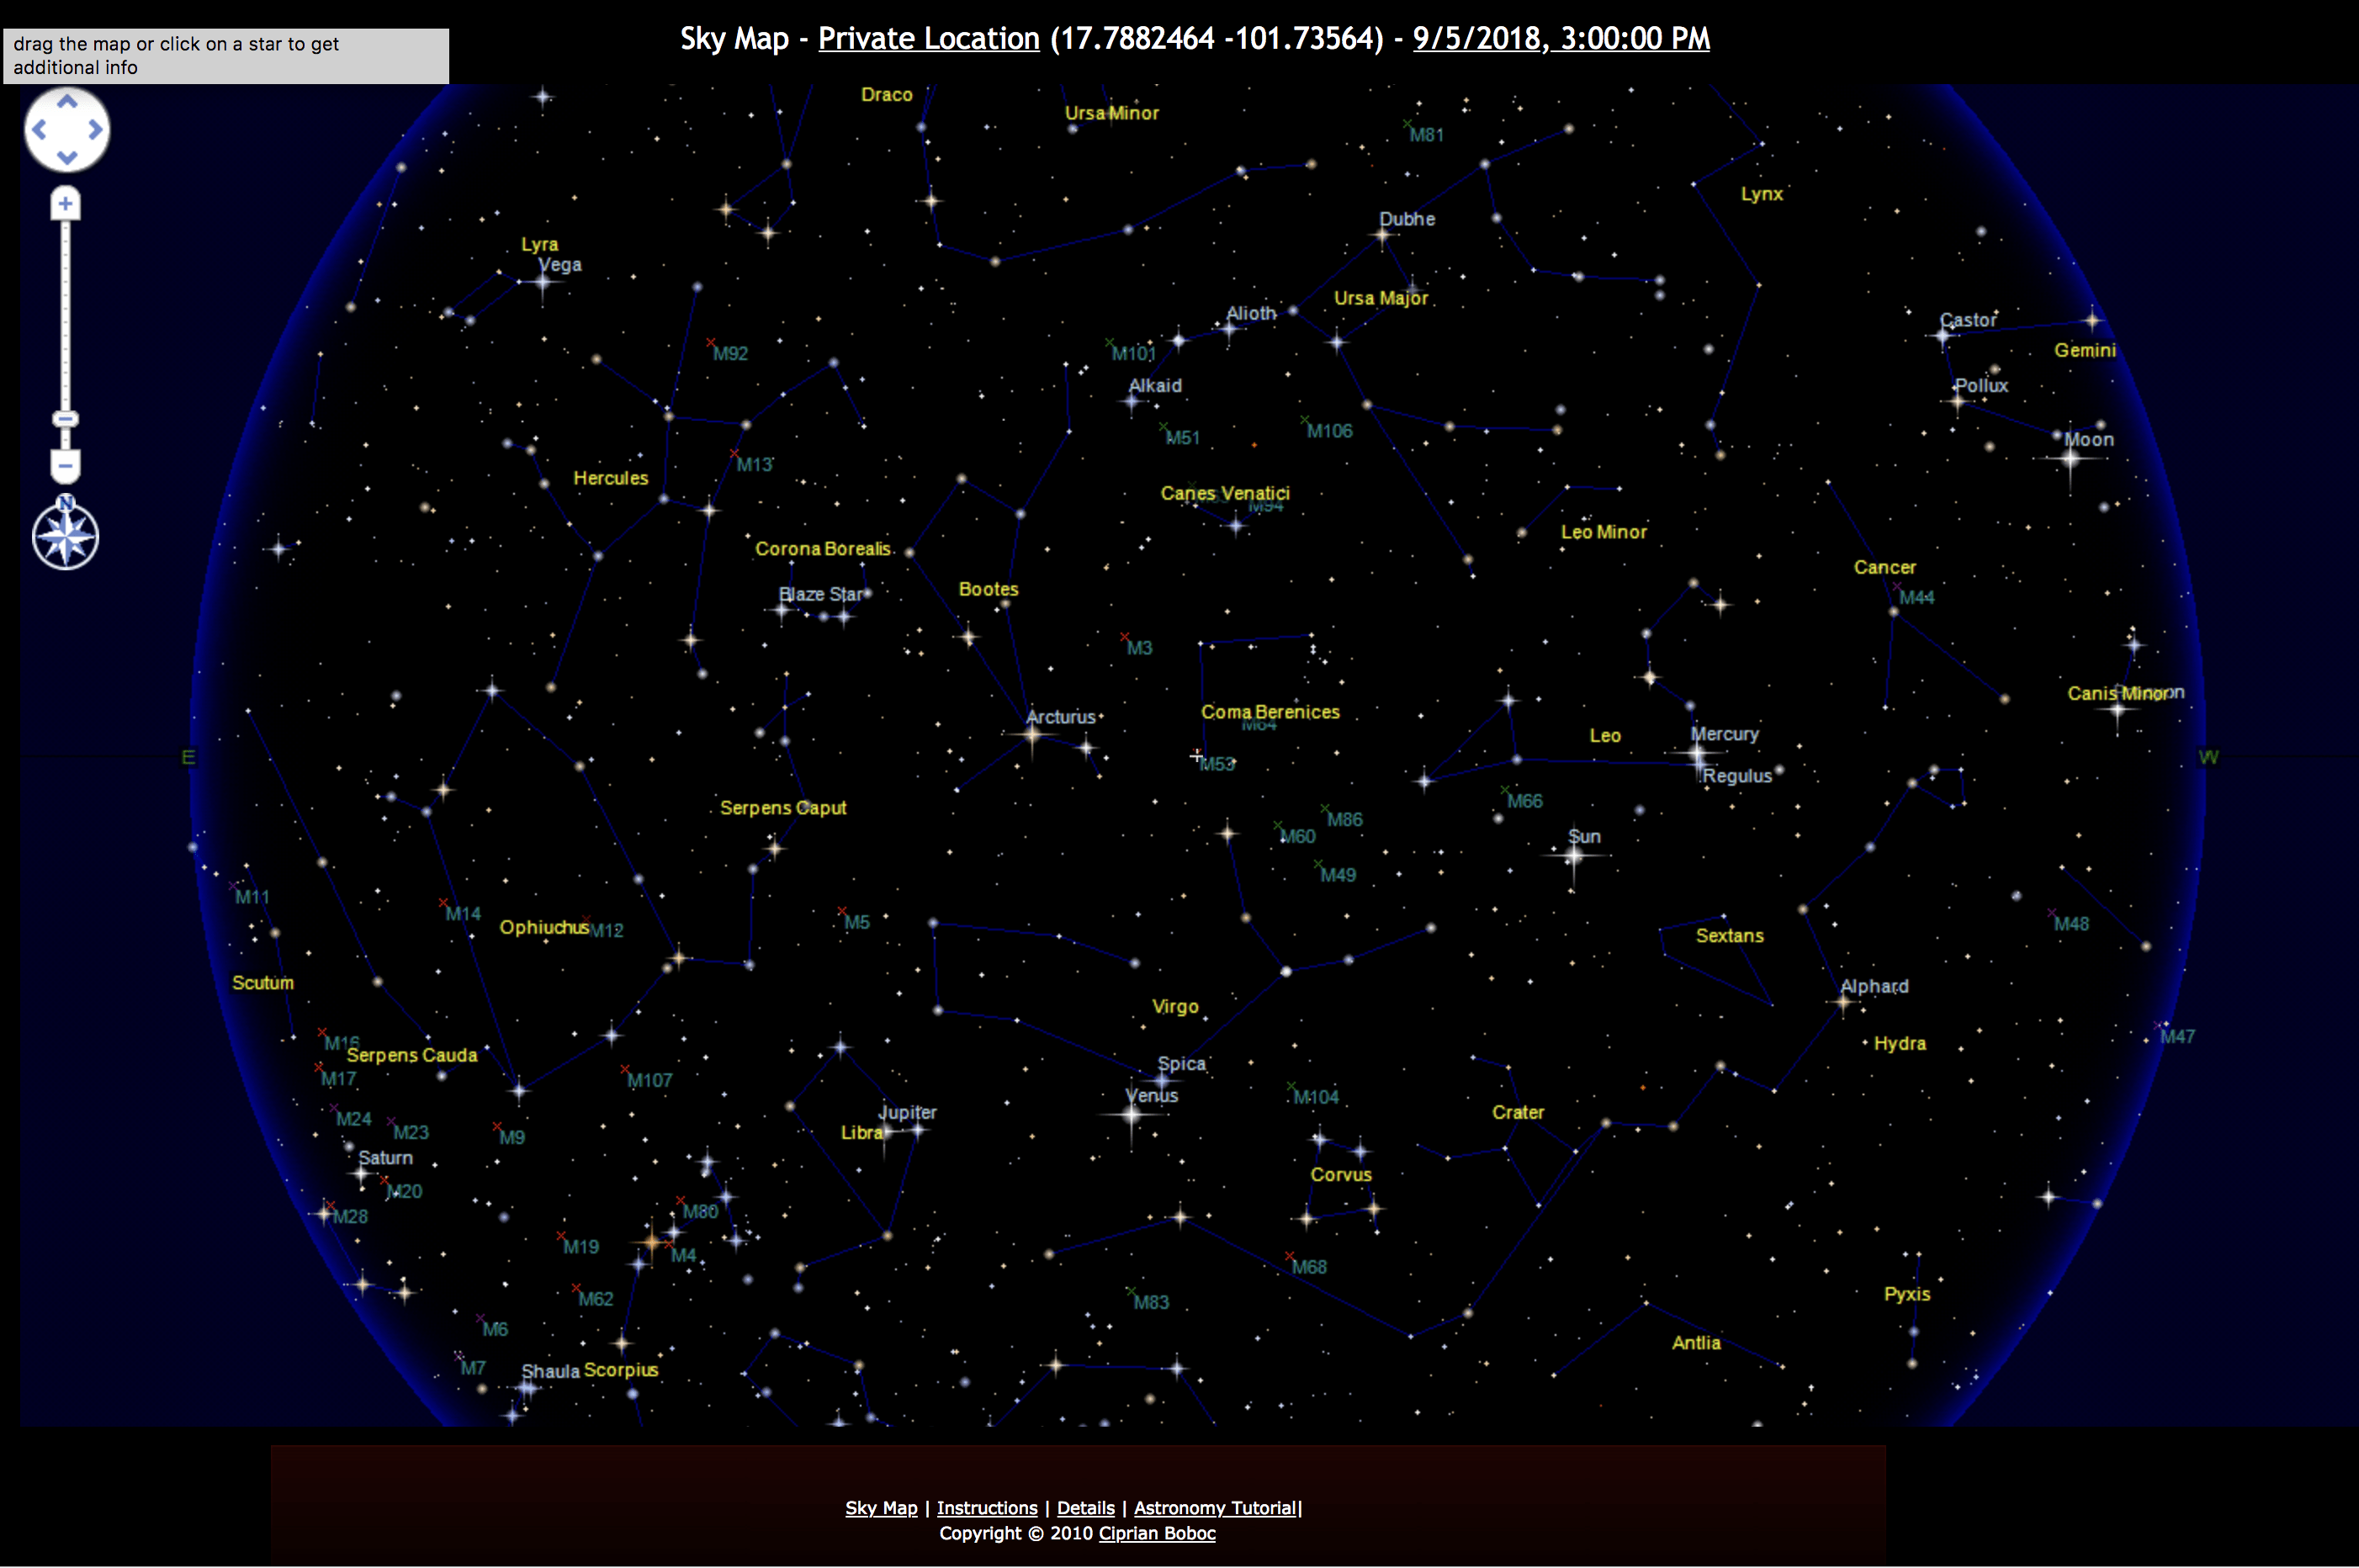 Sky map of stars and constellations above Troncones